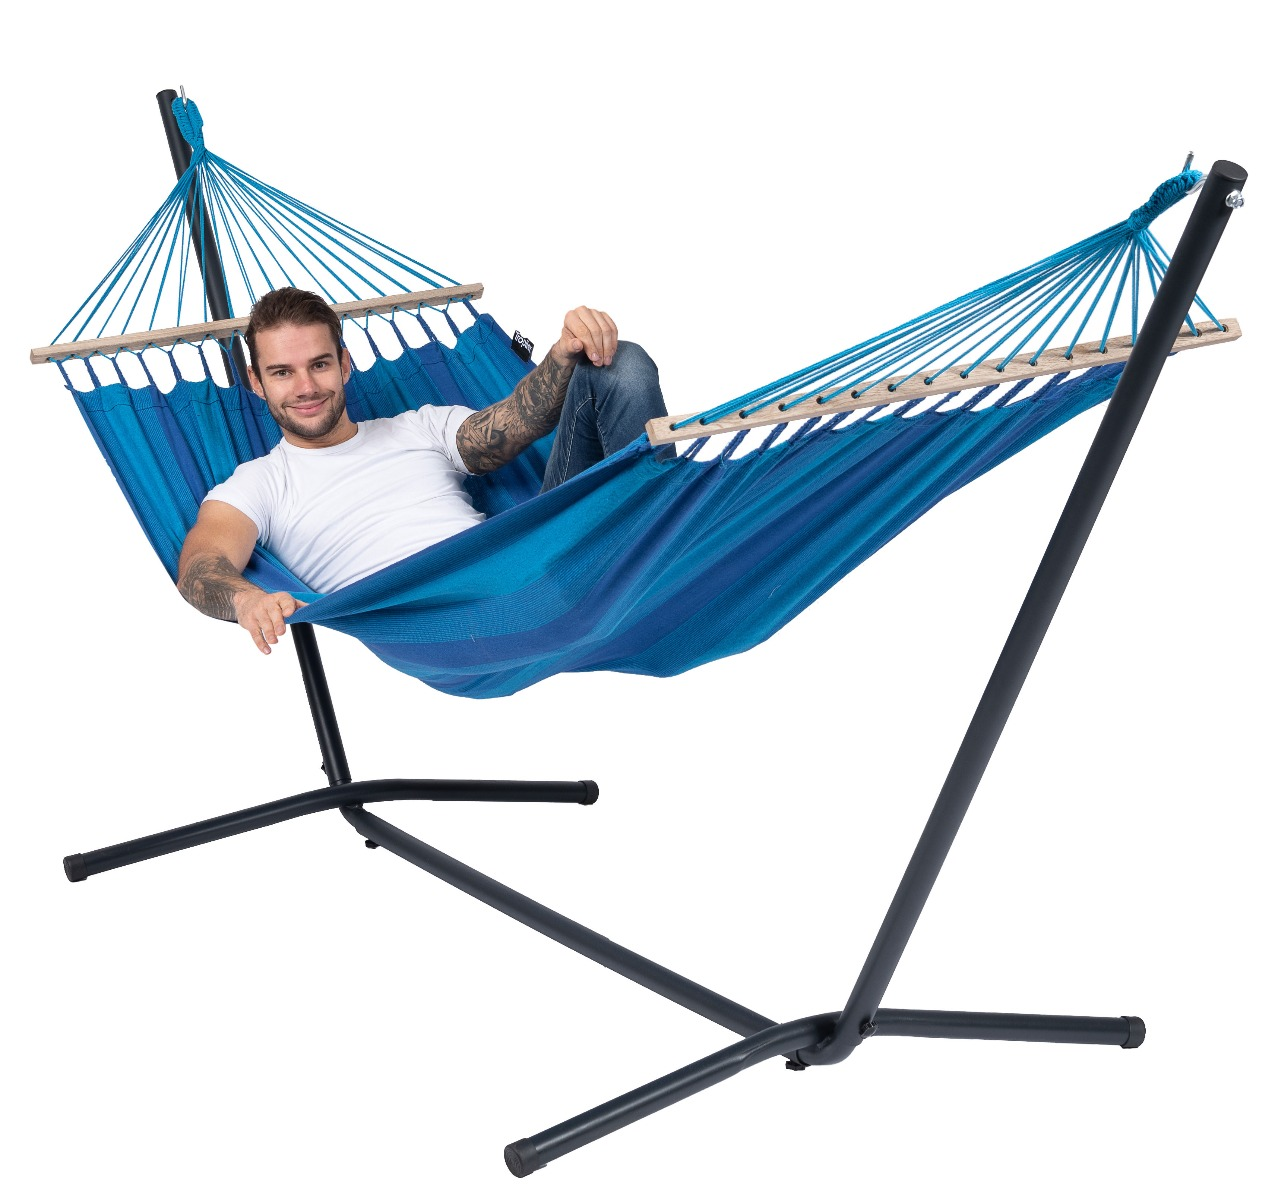 Hangmatset Single 'Easy & Relax' Blue - Tropilex �